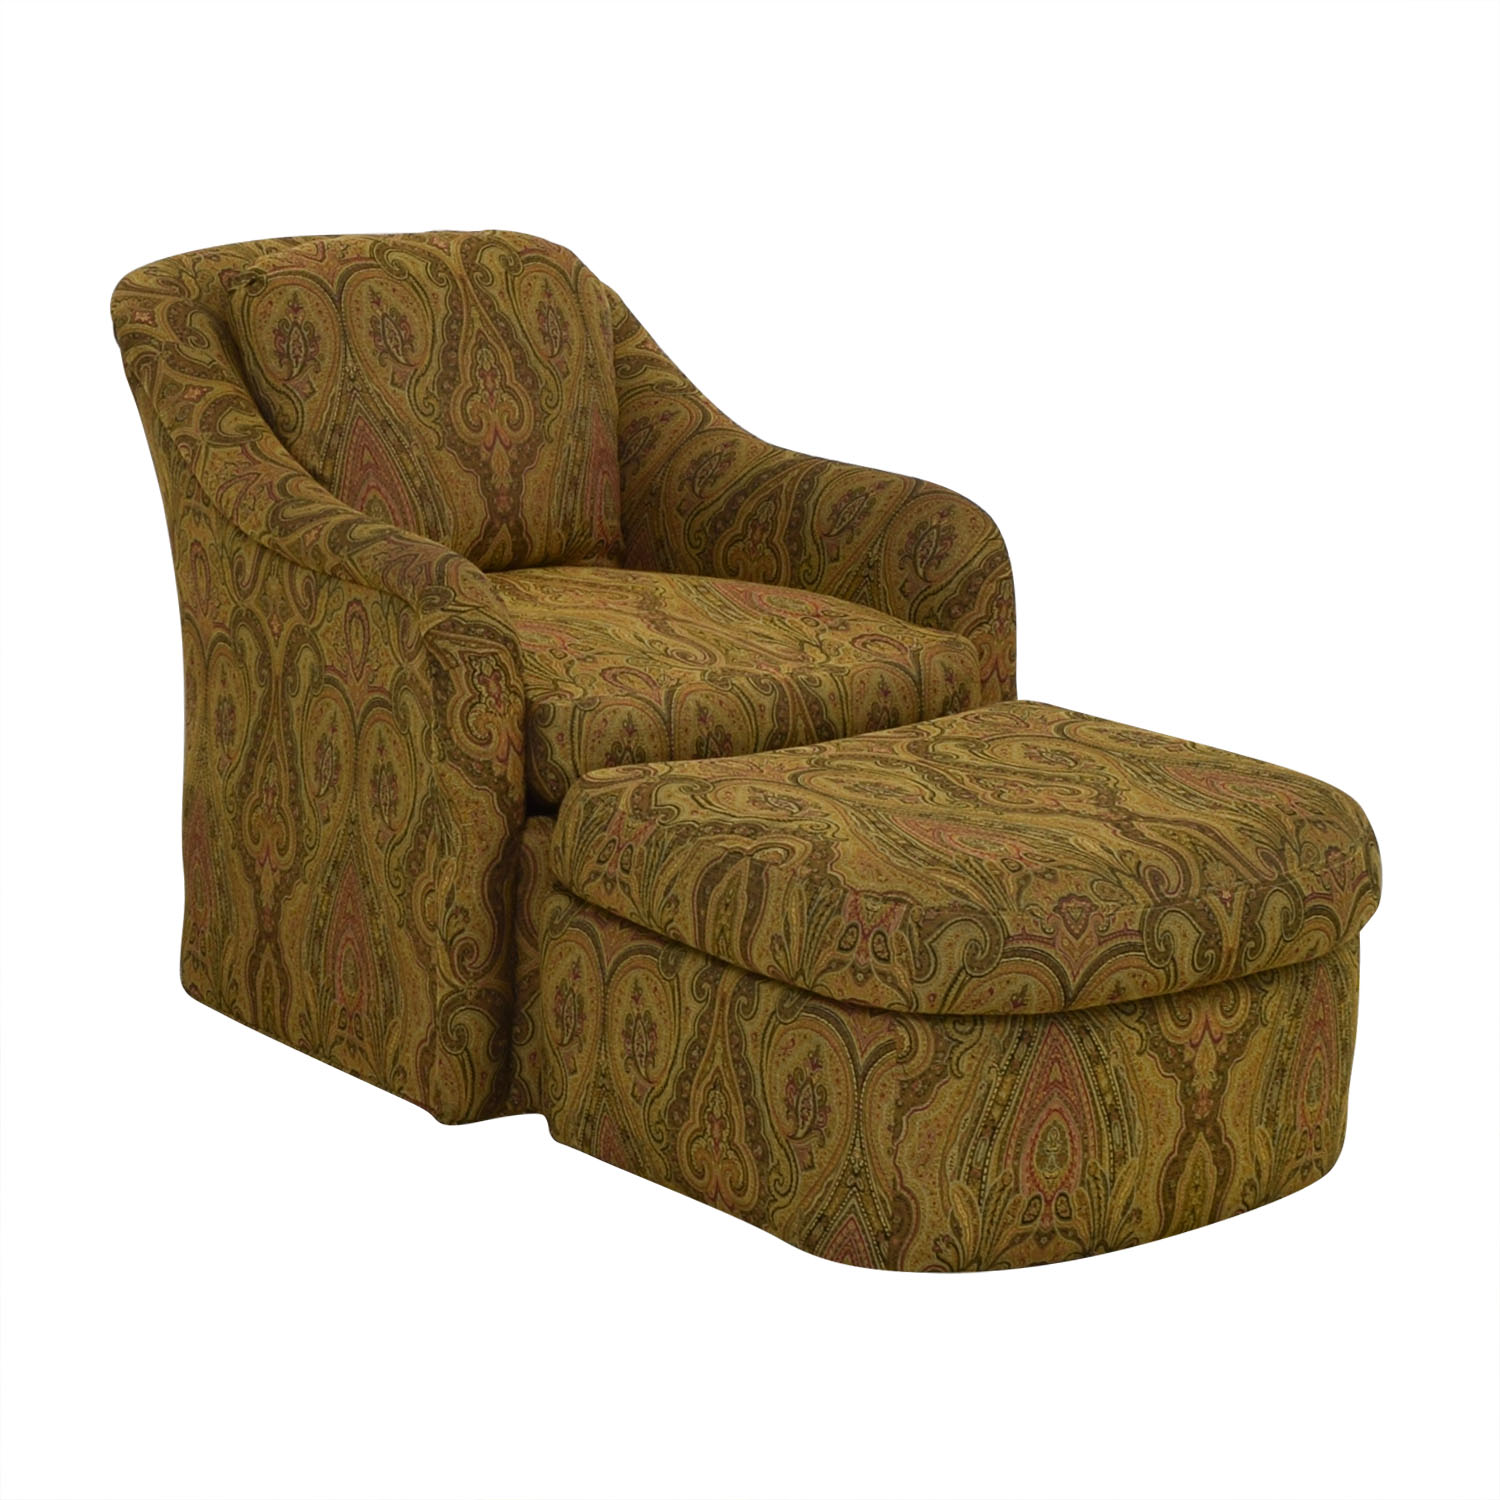 Marvelous 85 Off Pennsylvania House Pennsylvania House Swivel Chair And Ottoman Chairs Pabps2019 Chair Design Images Pabps2019Com